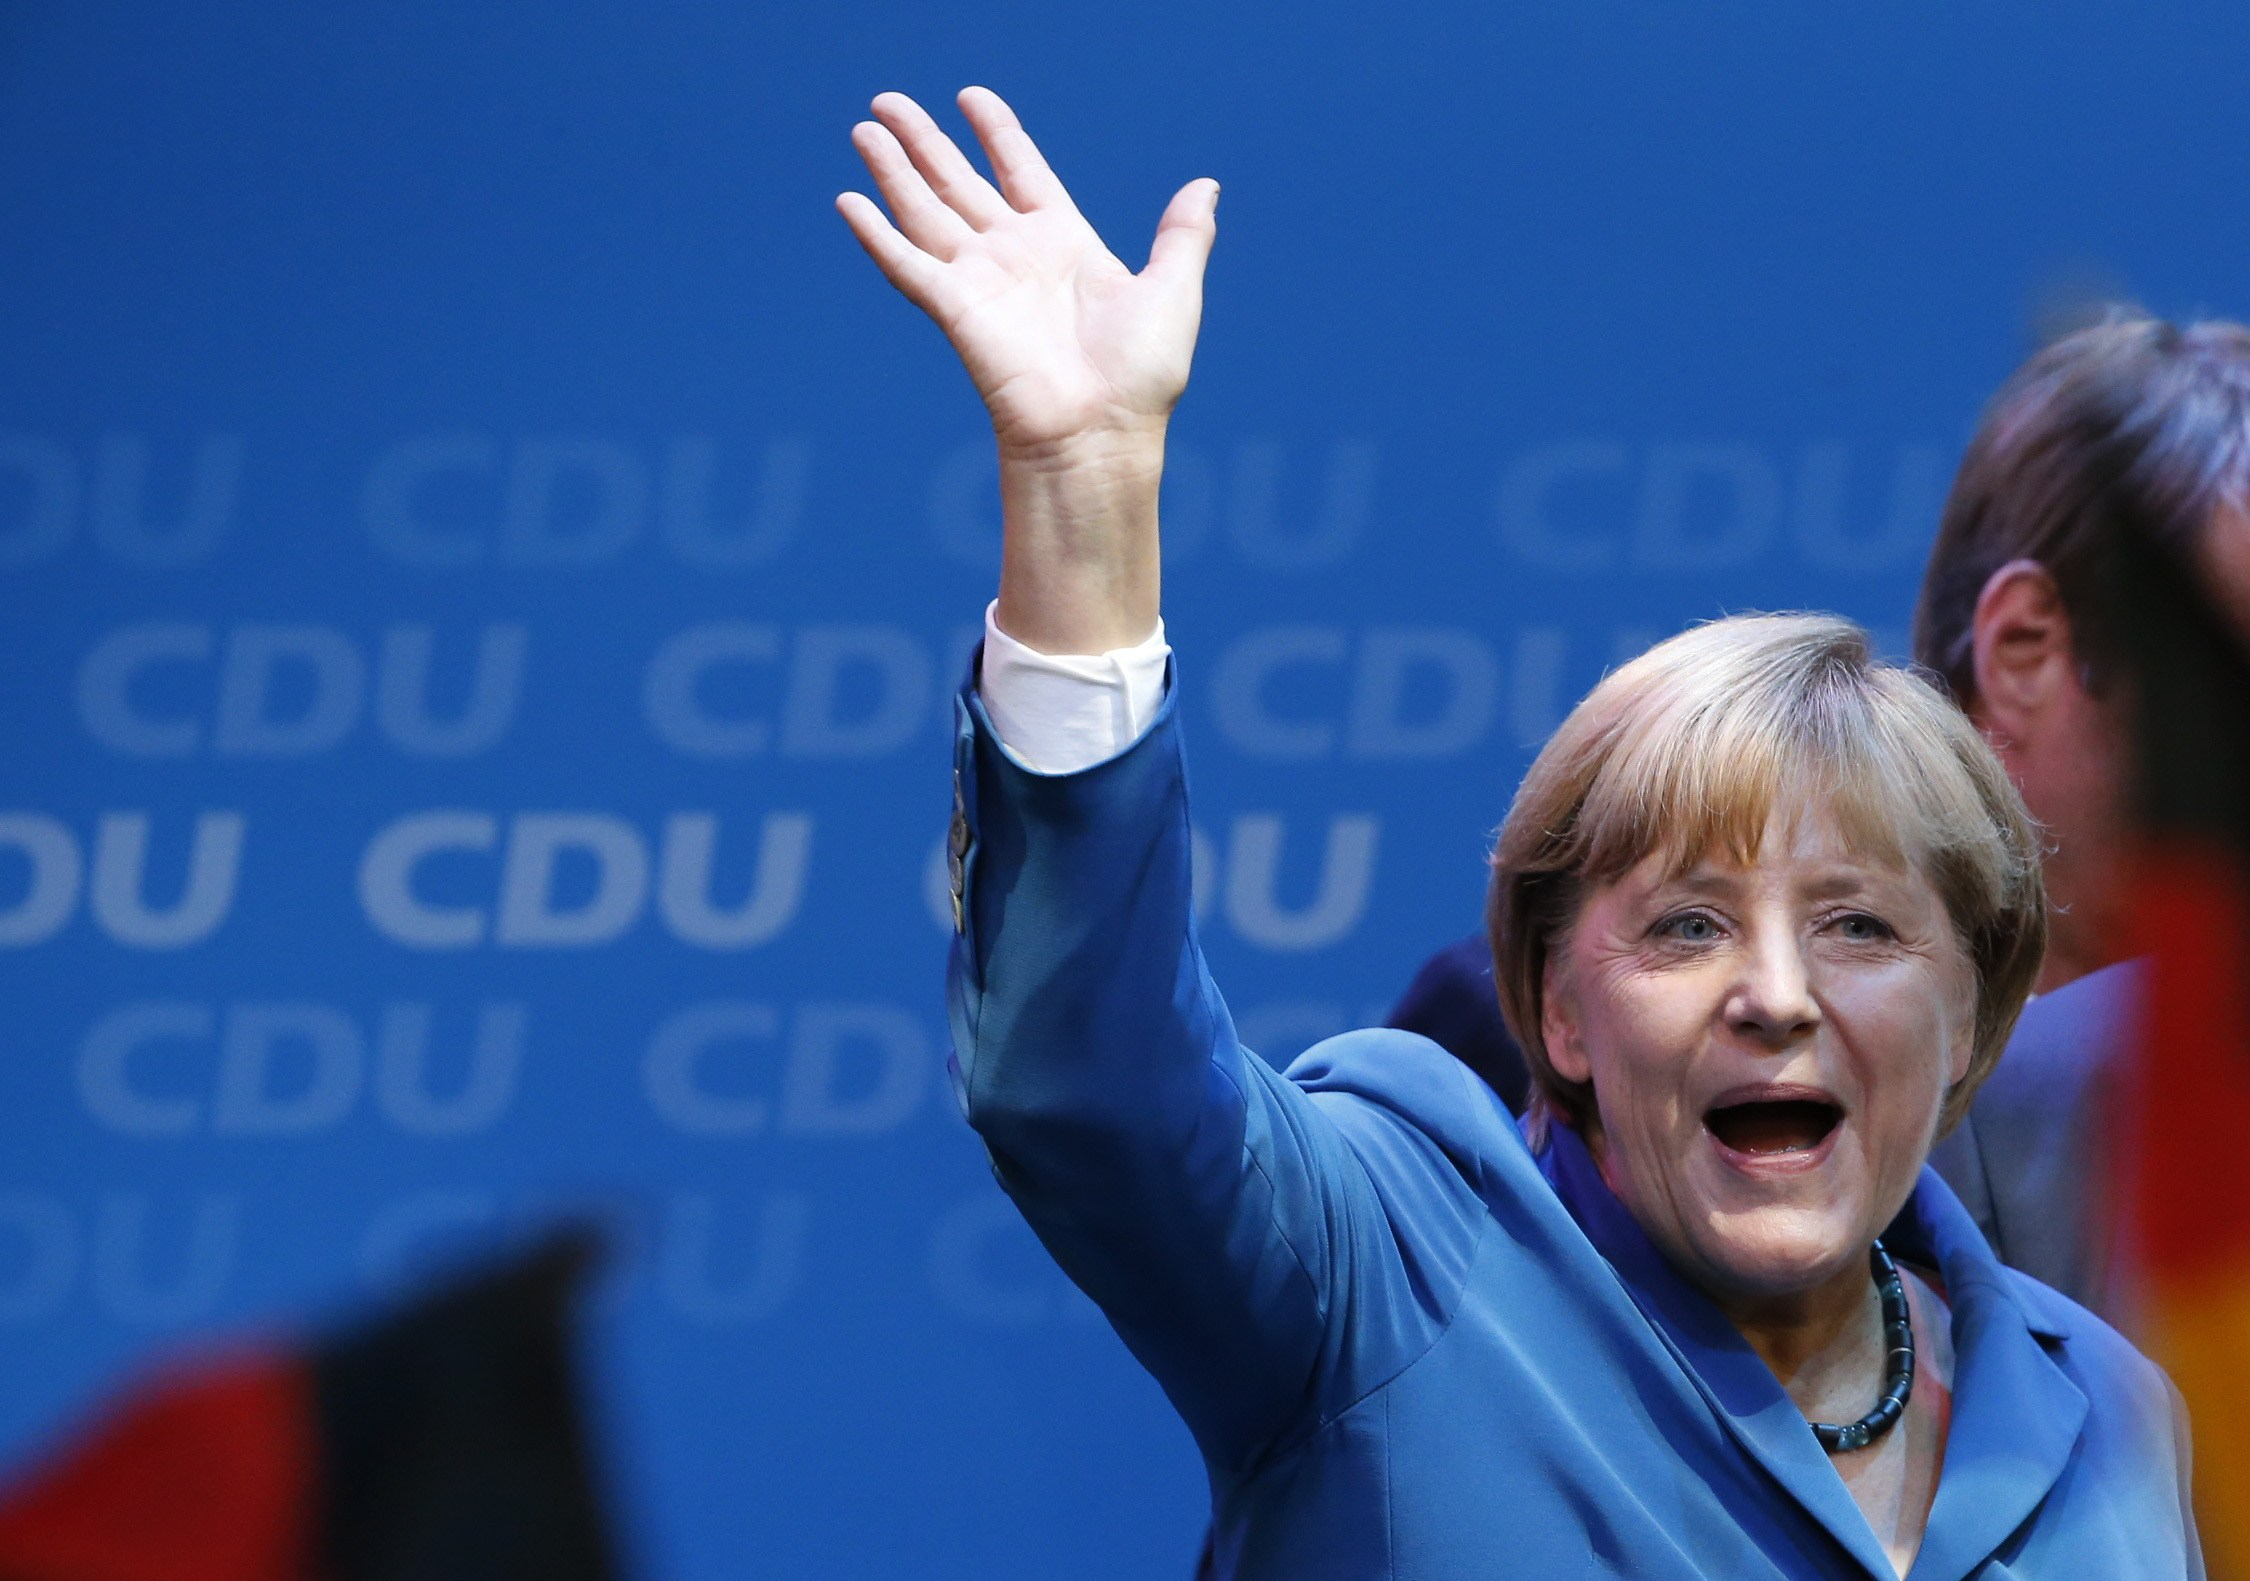 German Chancellor and leader of the Christian Democratic Union (CDU) Angela Merkel waves to supporters as she celebrates with party members after first exit polls in the German general election (Bundestagswahl) at the CDU party headquarters in Berlin September 22, 2013. Chancellor Angela Merkel won a landslide personal victory in a German election on Sunday, putting her within reach of the first absolute majority in parliament in half a century, a ringing endorsement of her steady leadership in the euro crisis.                REUTERS/Fabrizio Bensch (GERMANY  - Tags: POLITICS ELECTIONS)